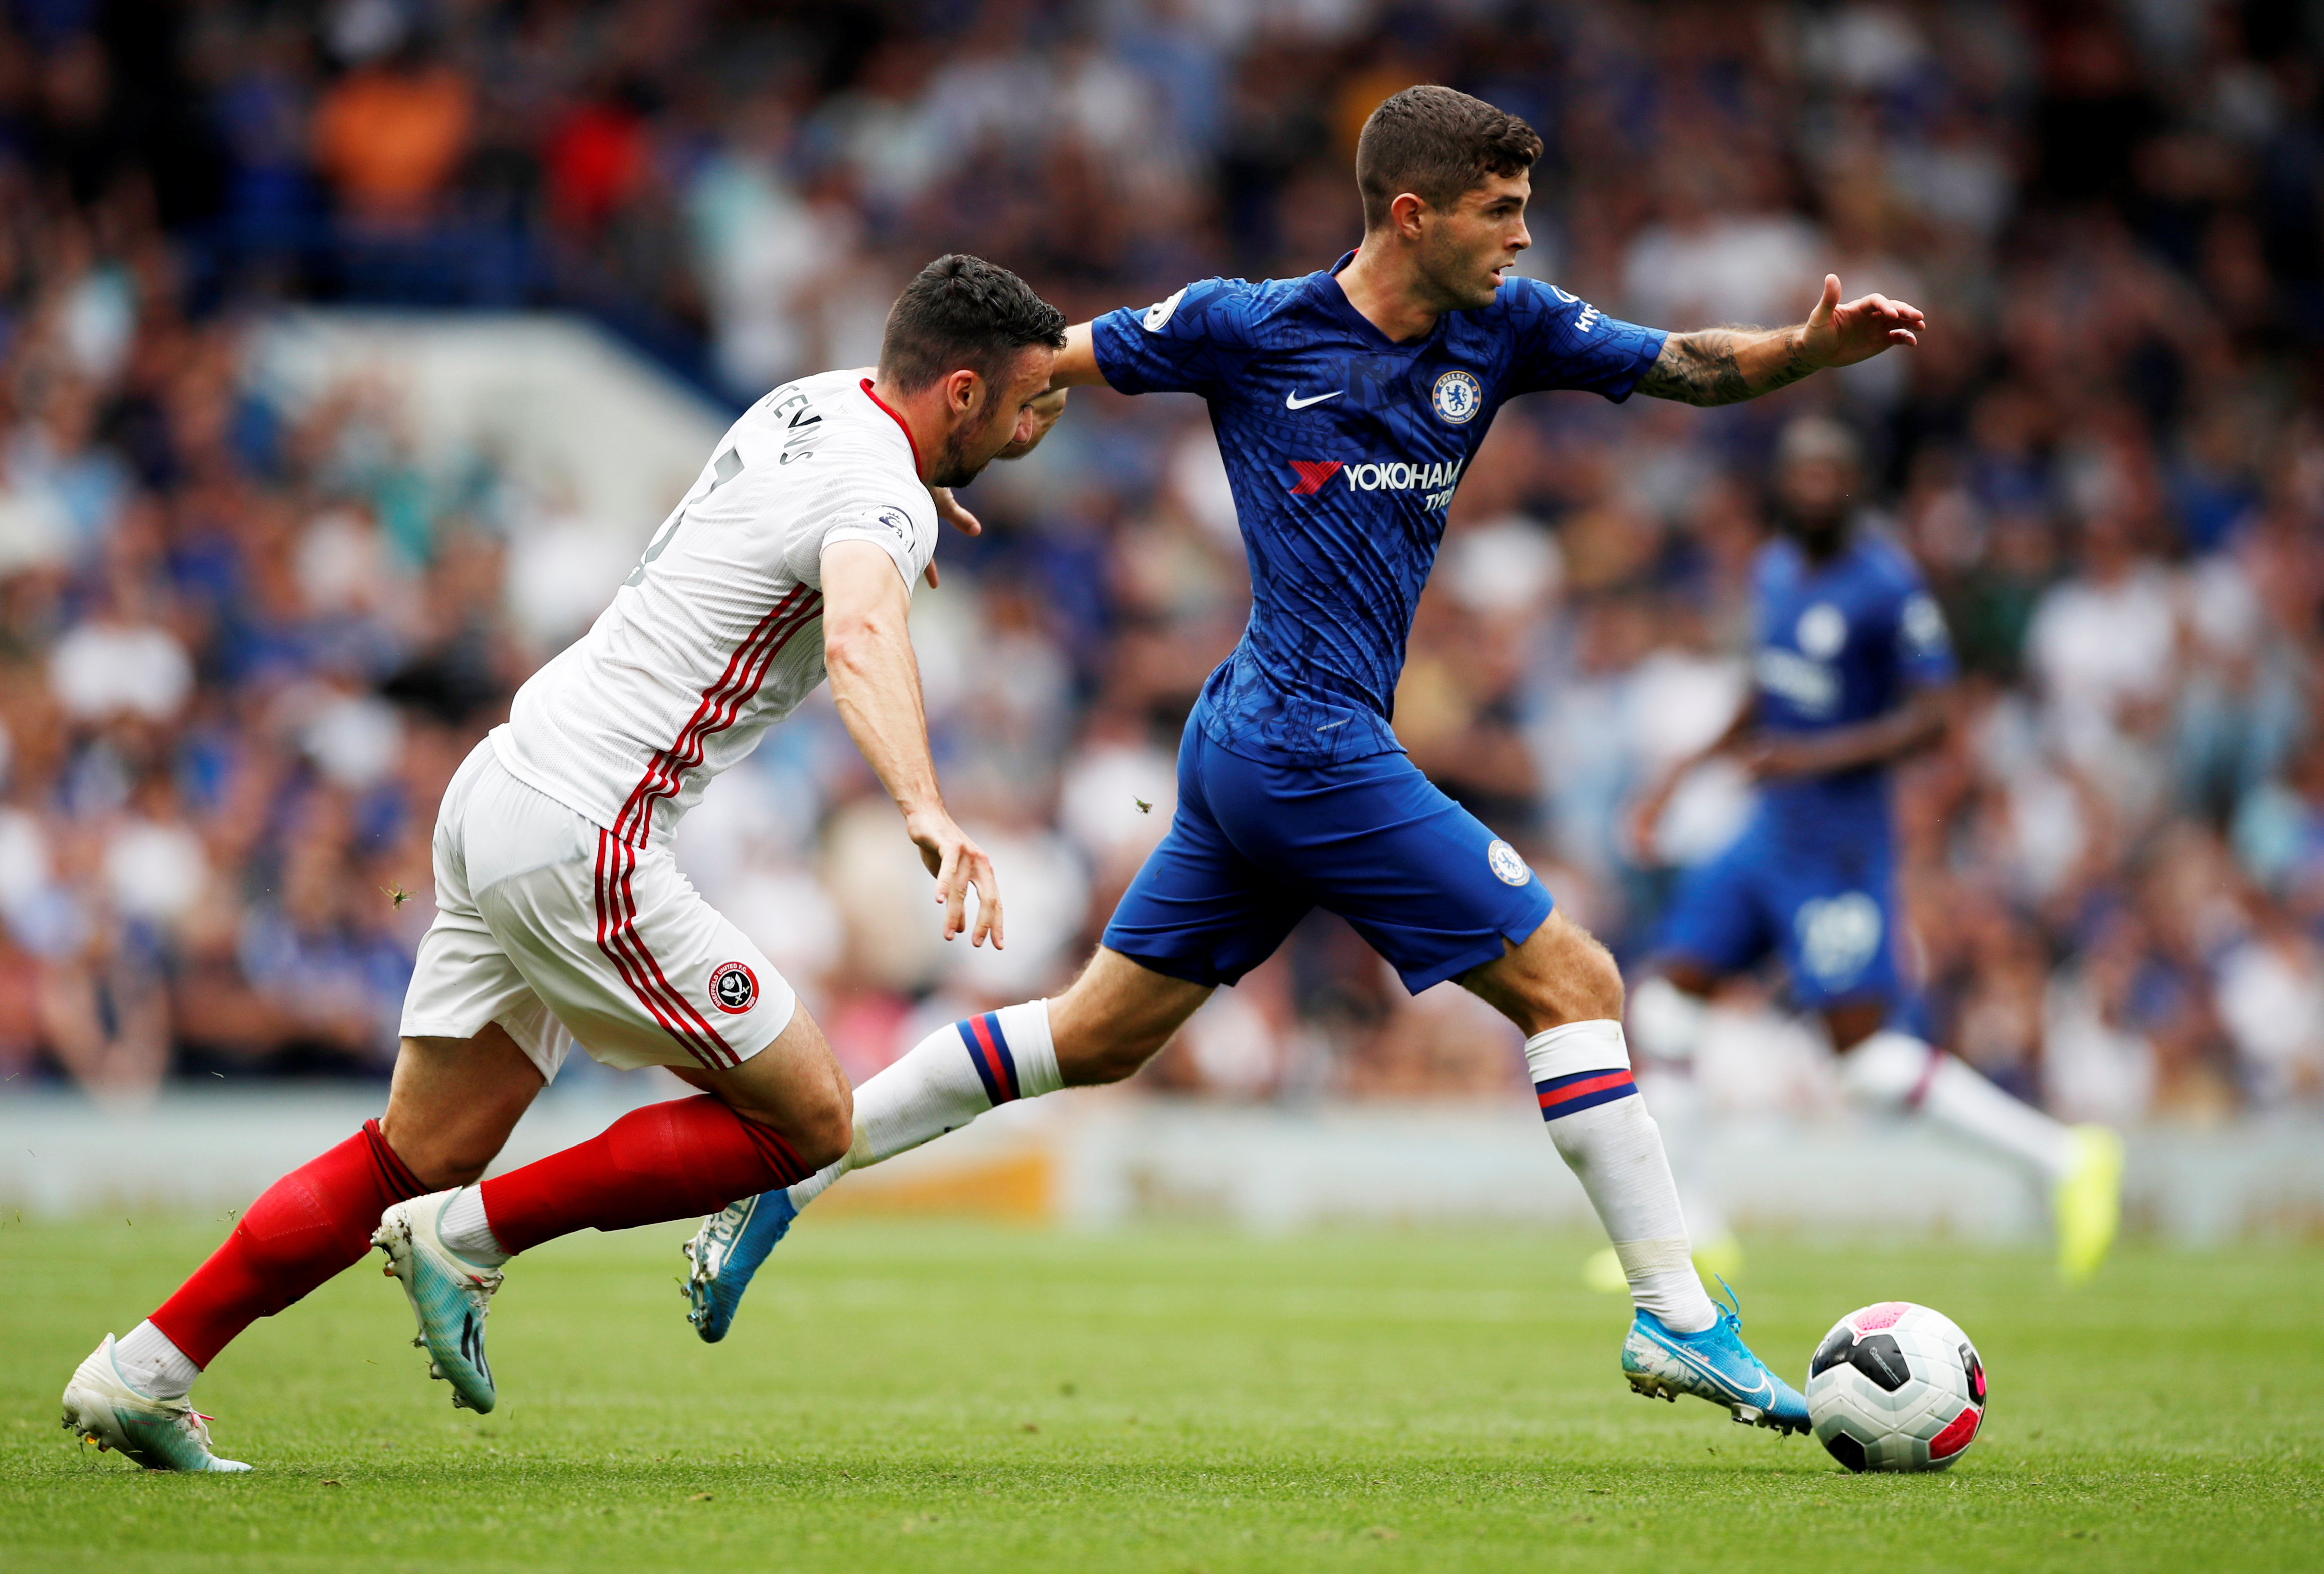 Lampard insists Pulisic will get game time